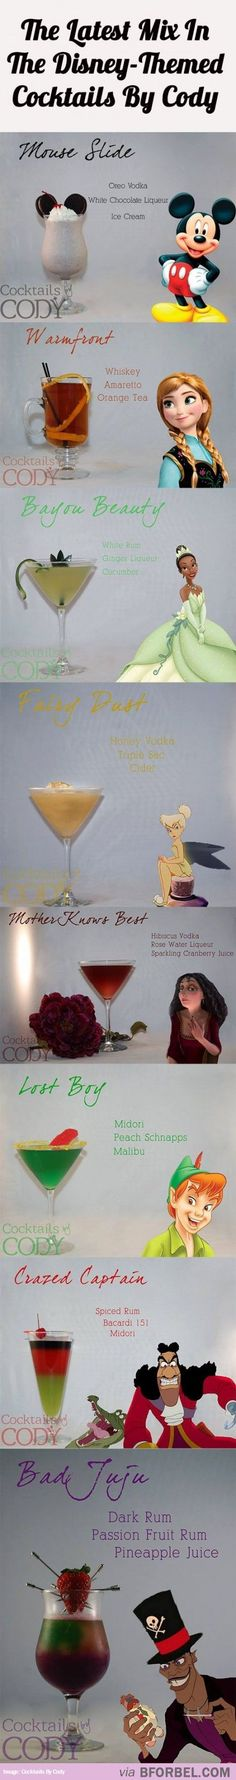 8 Disney-Themed Cocktails @amymariefurry there is such a thing as oreo vodka?? say what?